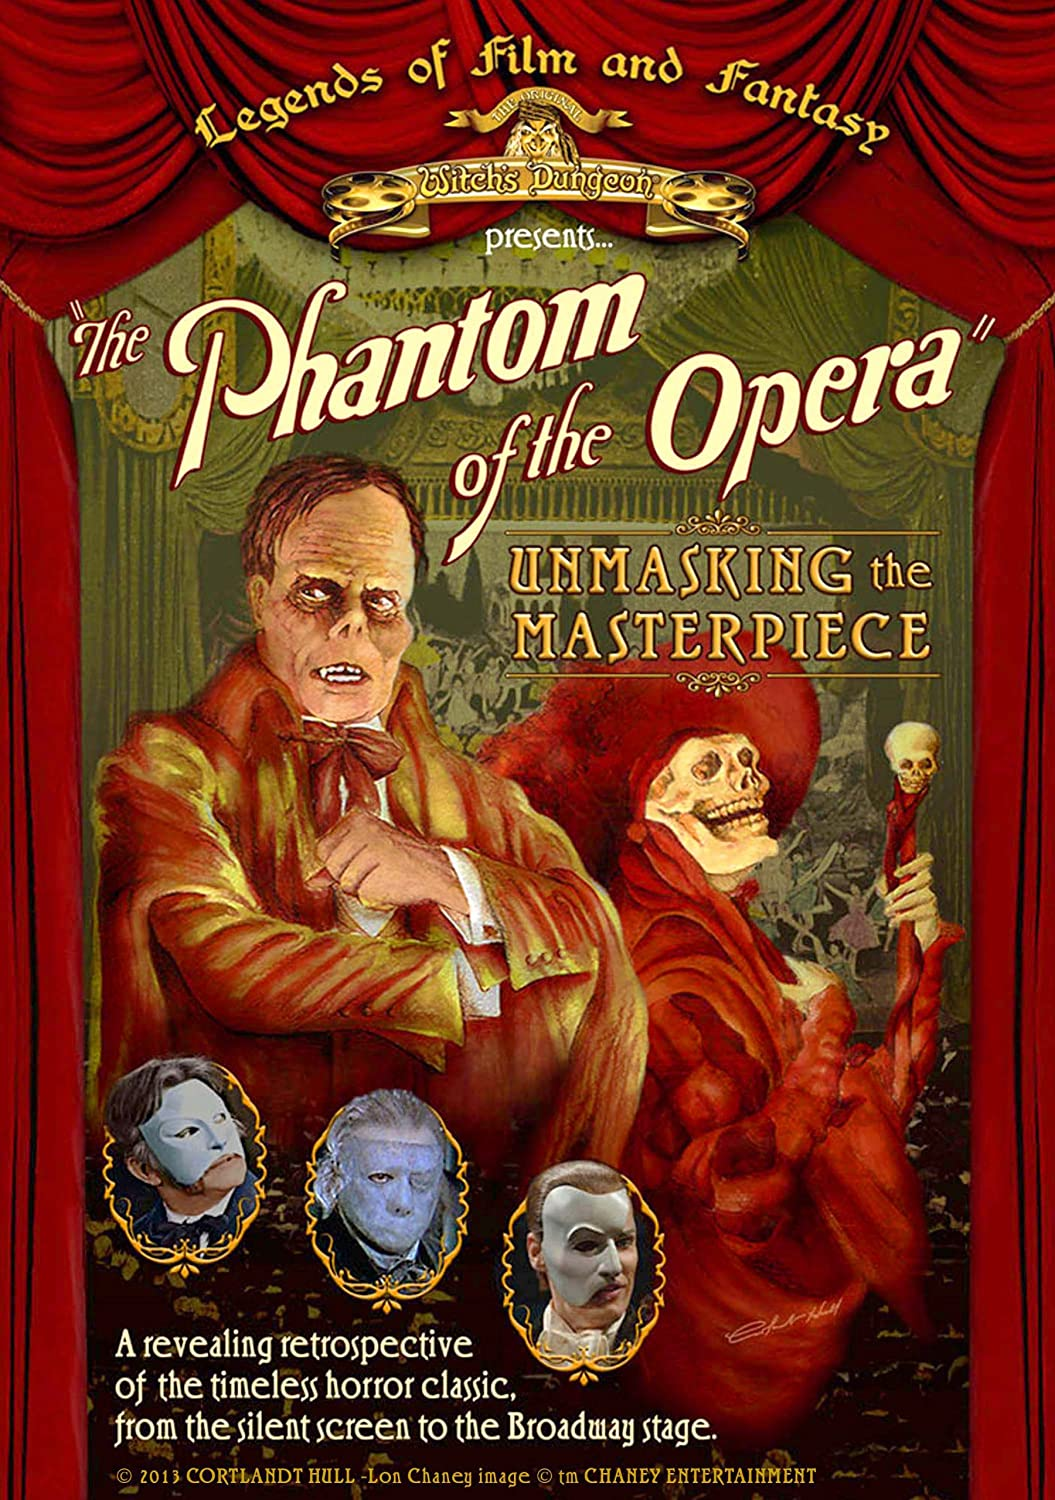 Documentary DVD: 'The Phantom of the Opera: Unmasking The Masterpiece' 91VLlEDmsSL._SL1500_